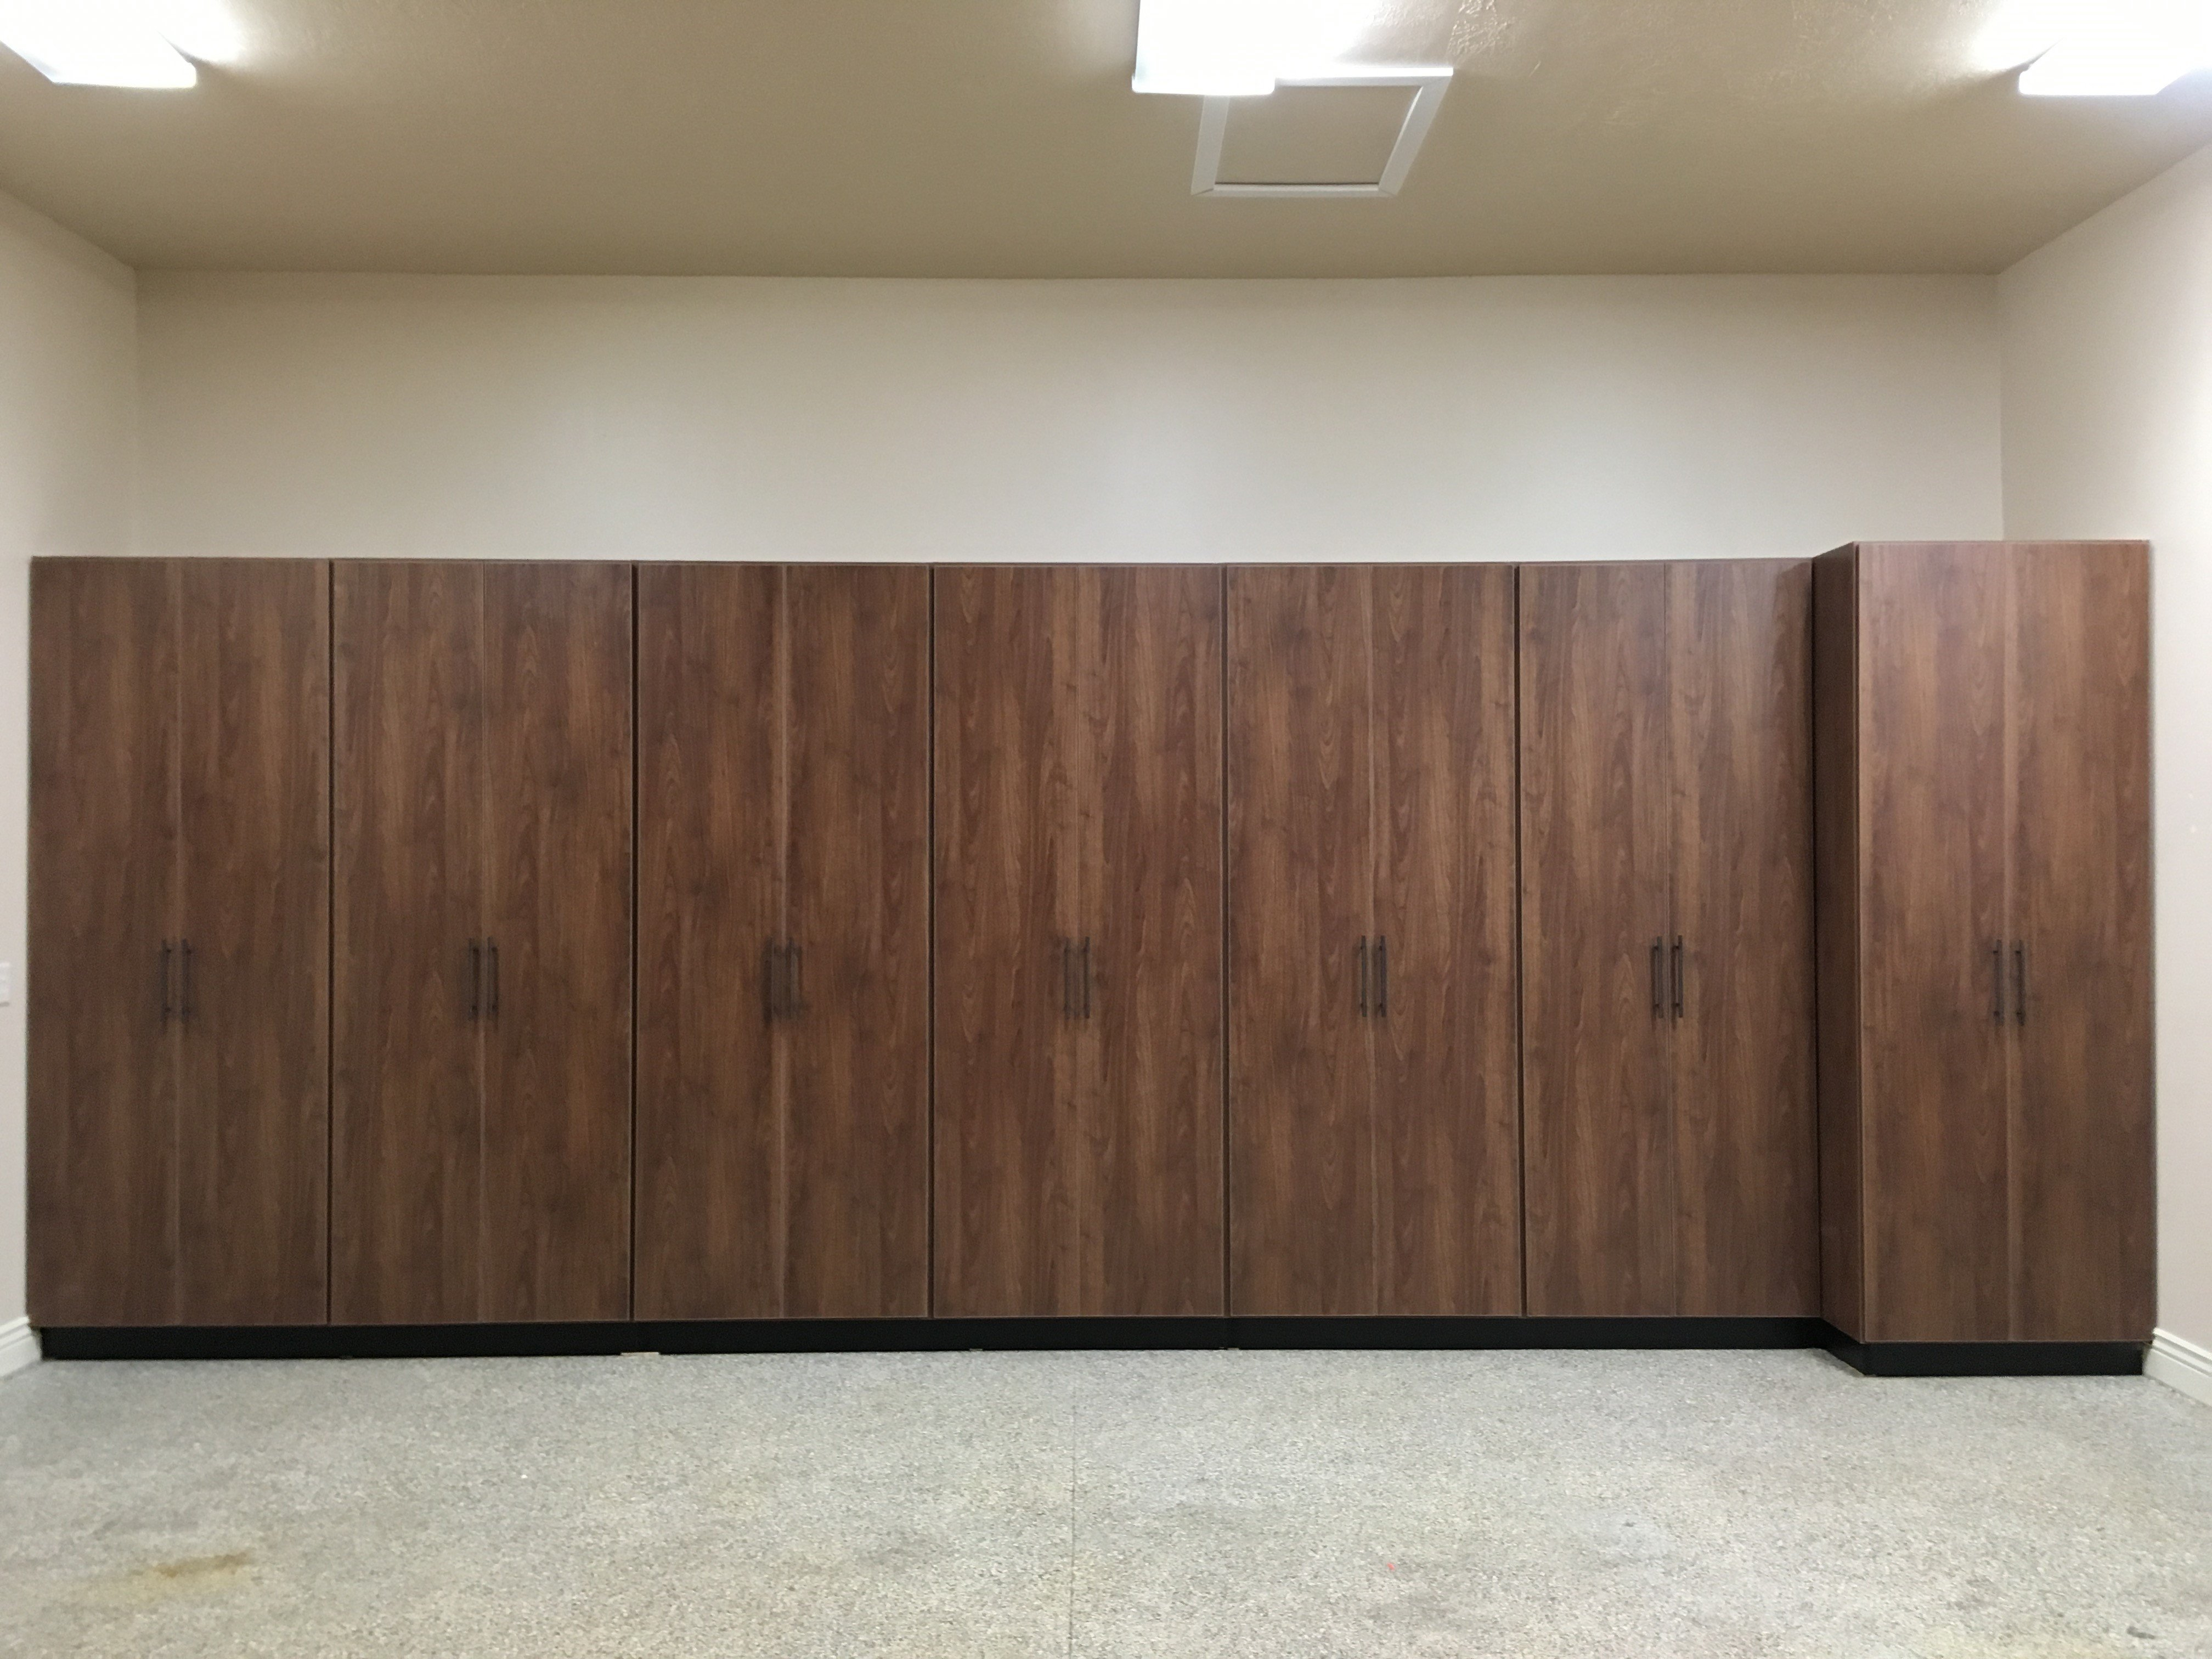 Custom garage cabinet organizer salt lake city utah custom garage design salt lake city ut solutioingenieria Choice Image